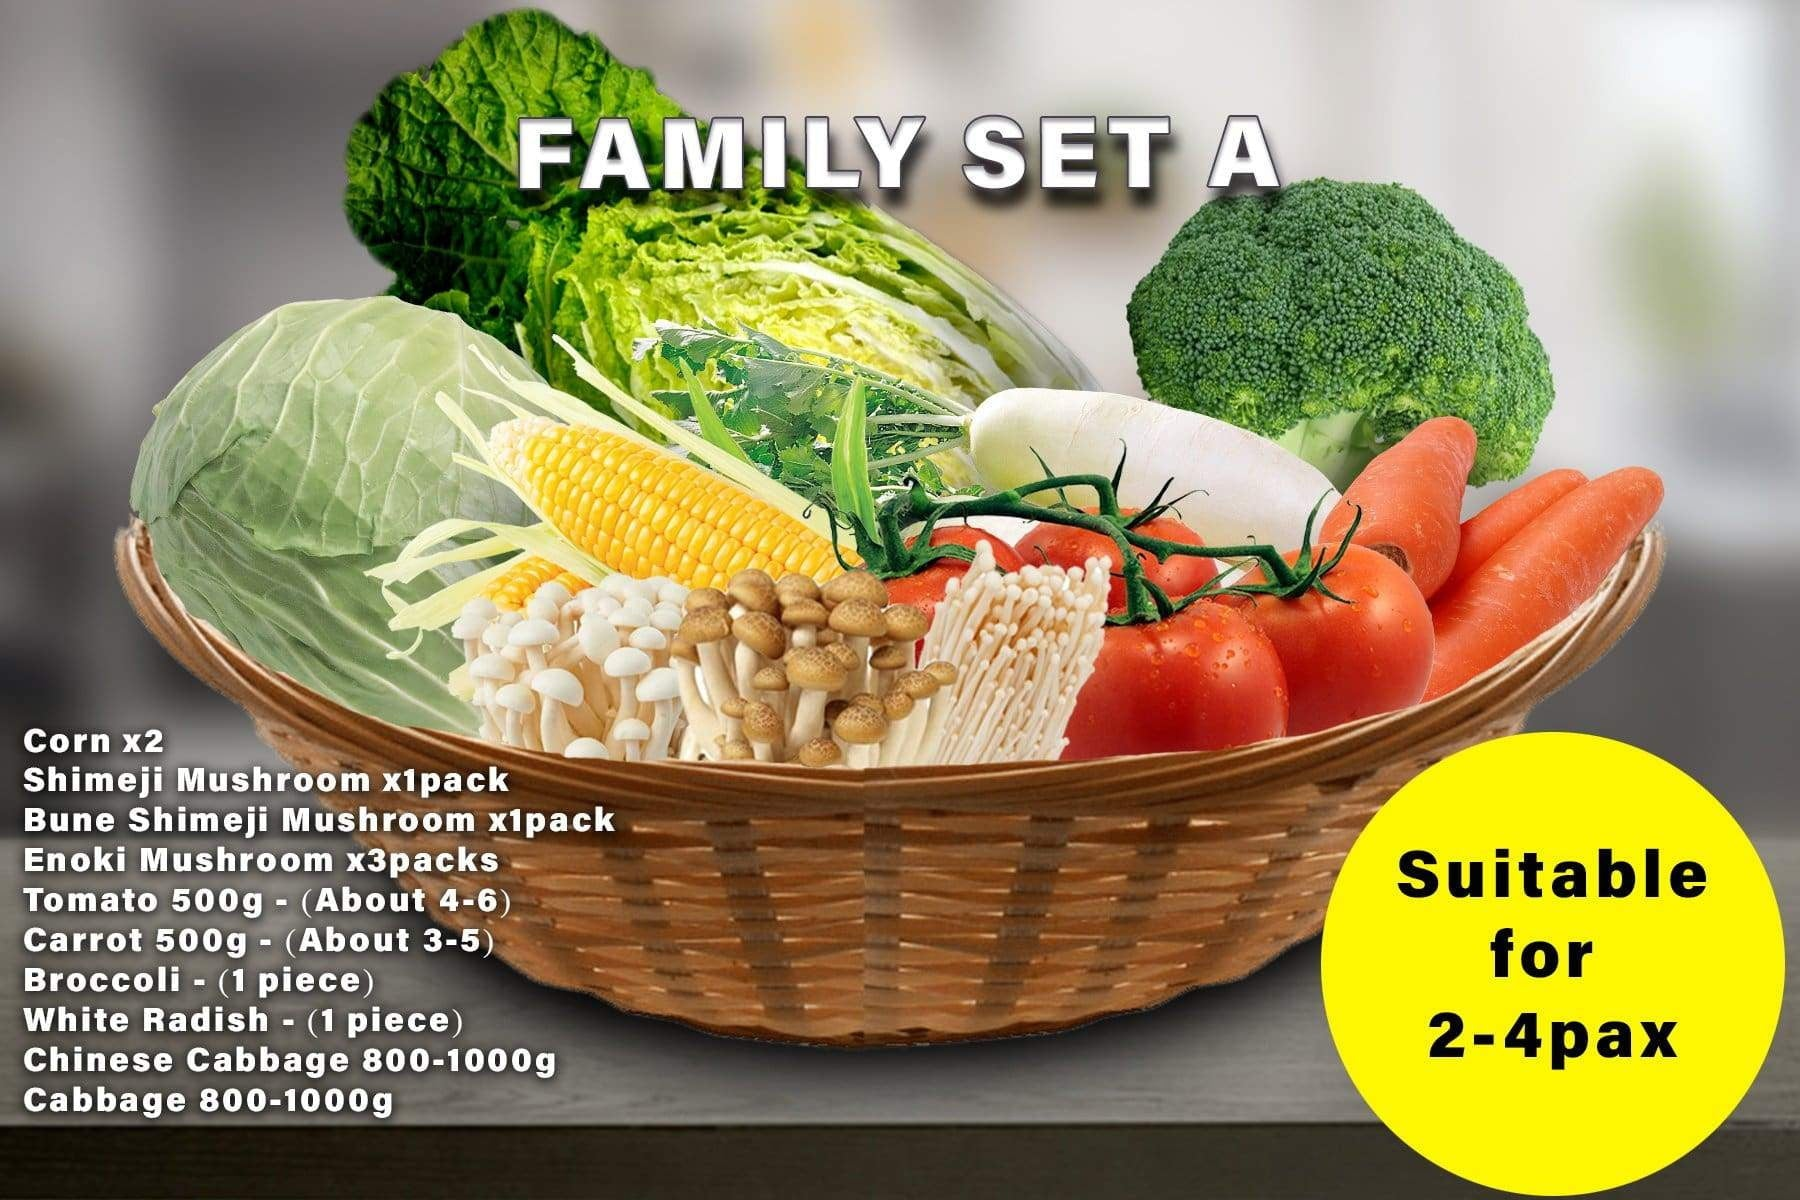 Penang Grocery Store Online Next Day Delivery is Offering Family Set A